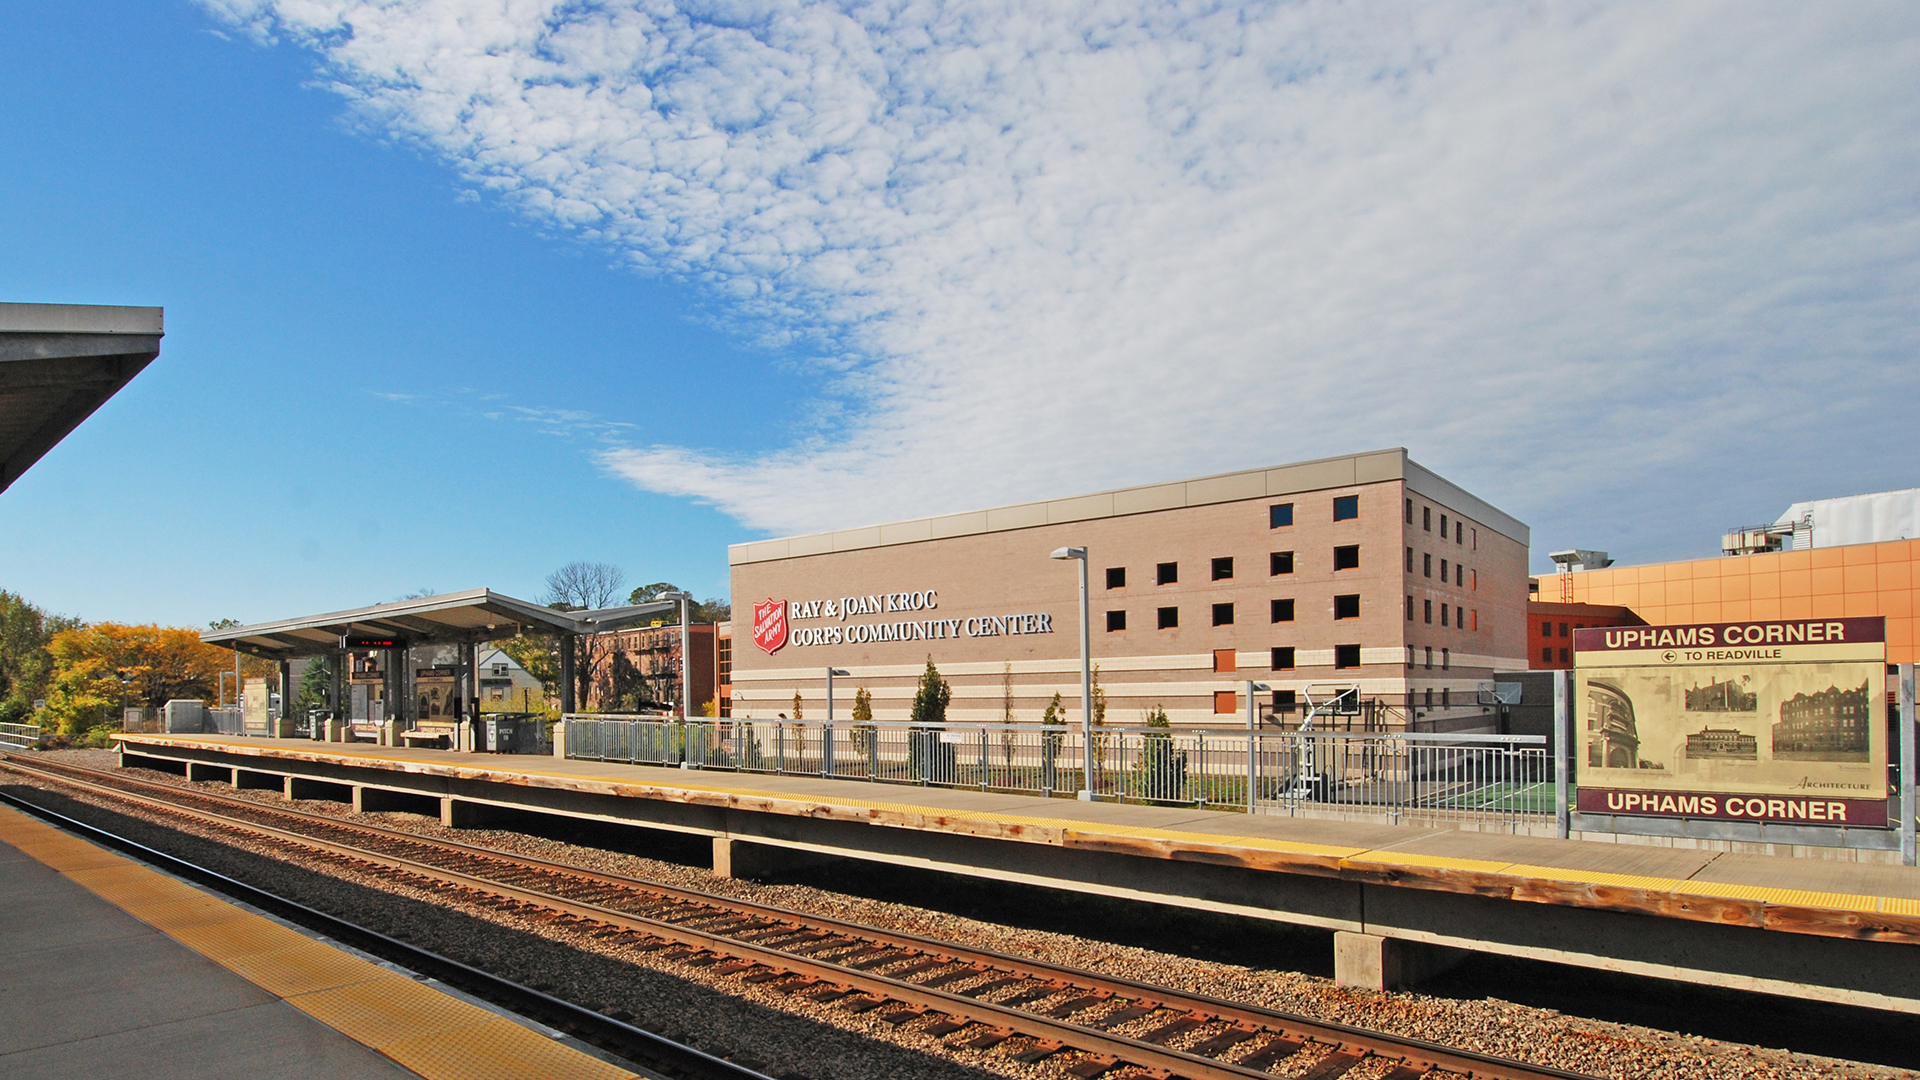 Boston: A model for fostering transit-oriented development